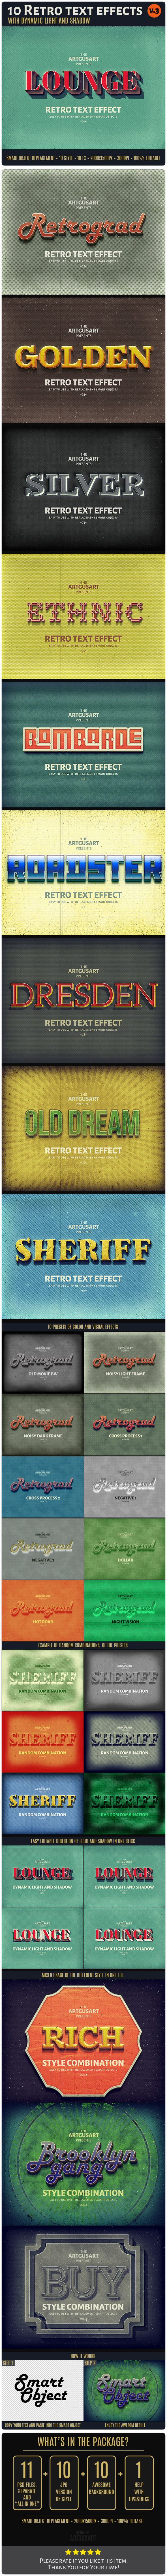 10 Retro Text Effect v.3 - Text Effects Actions